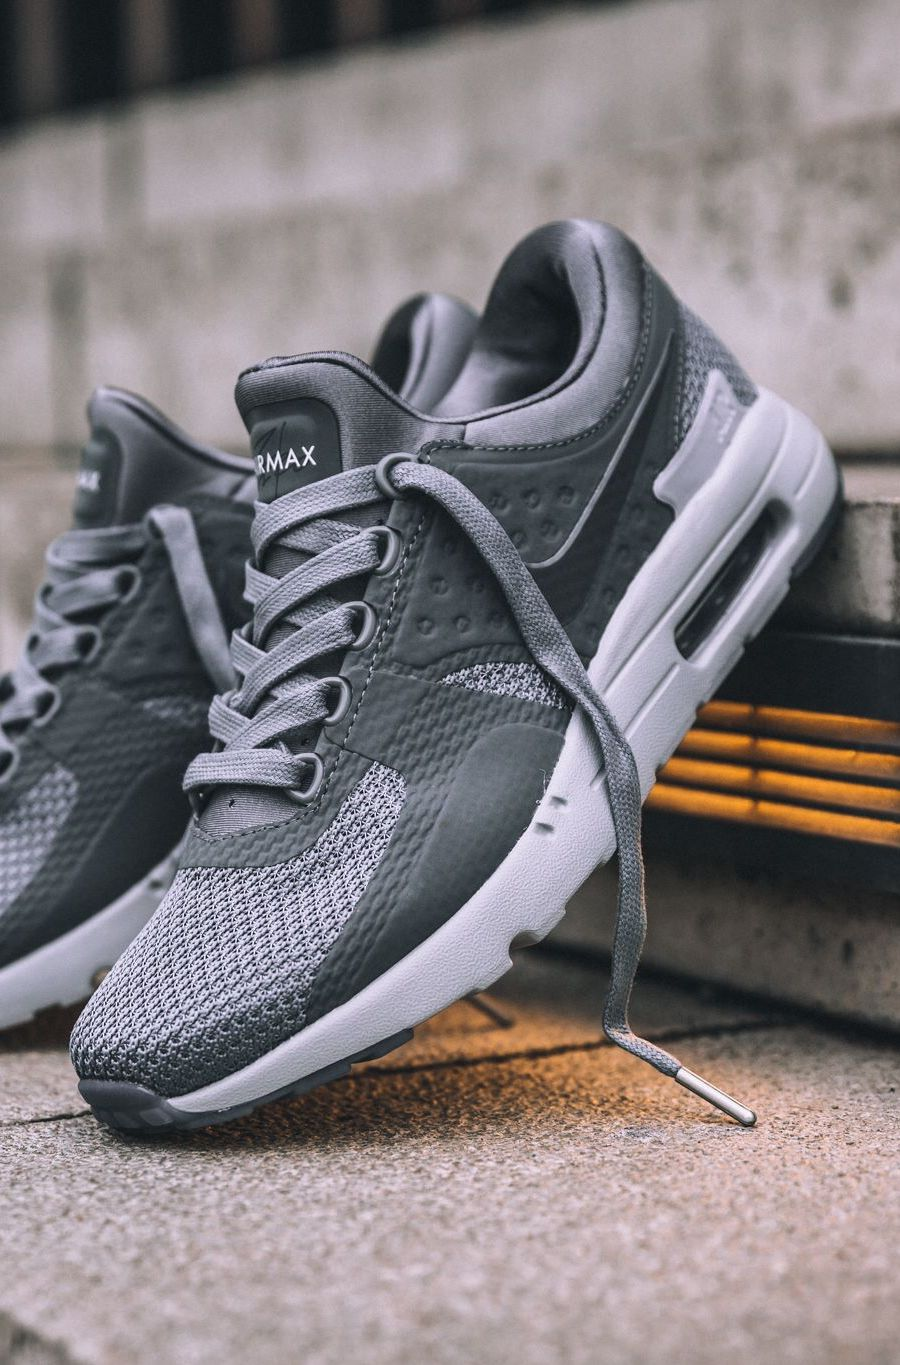 NIKE AIR MAX ZERO QS 'Cool Grey' (via Kicks